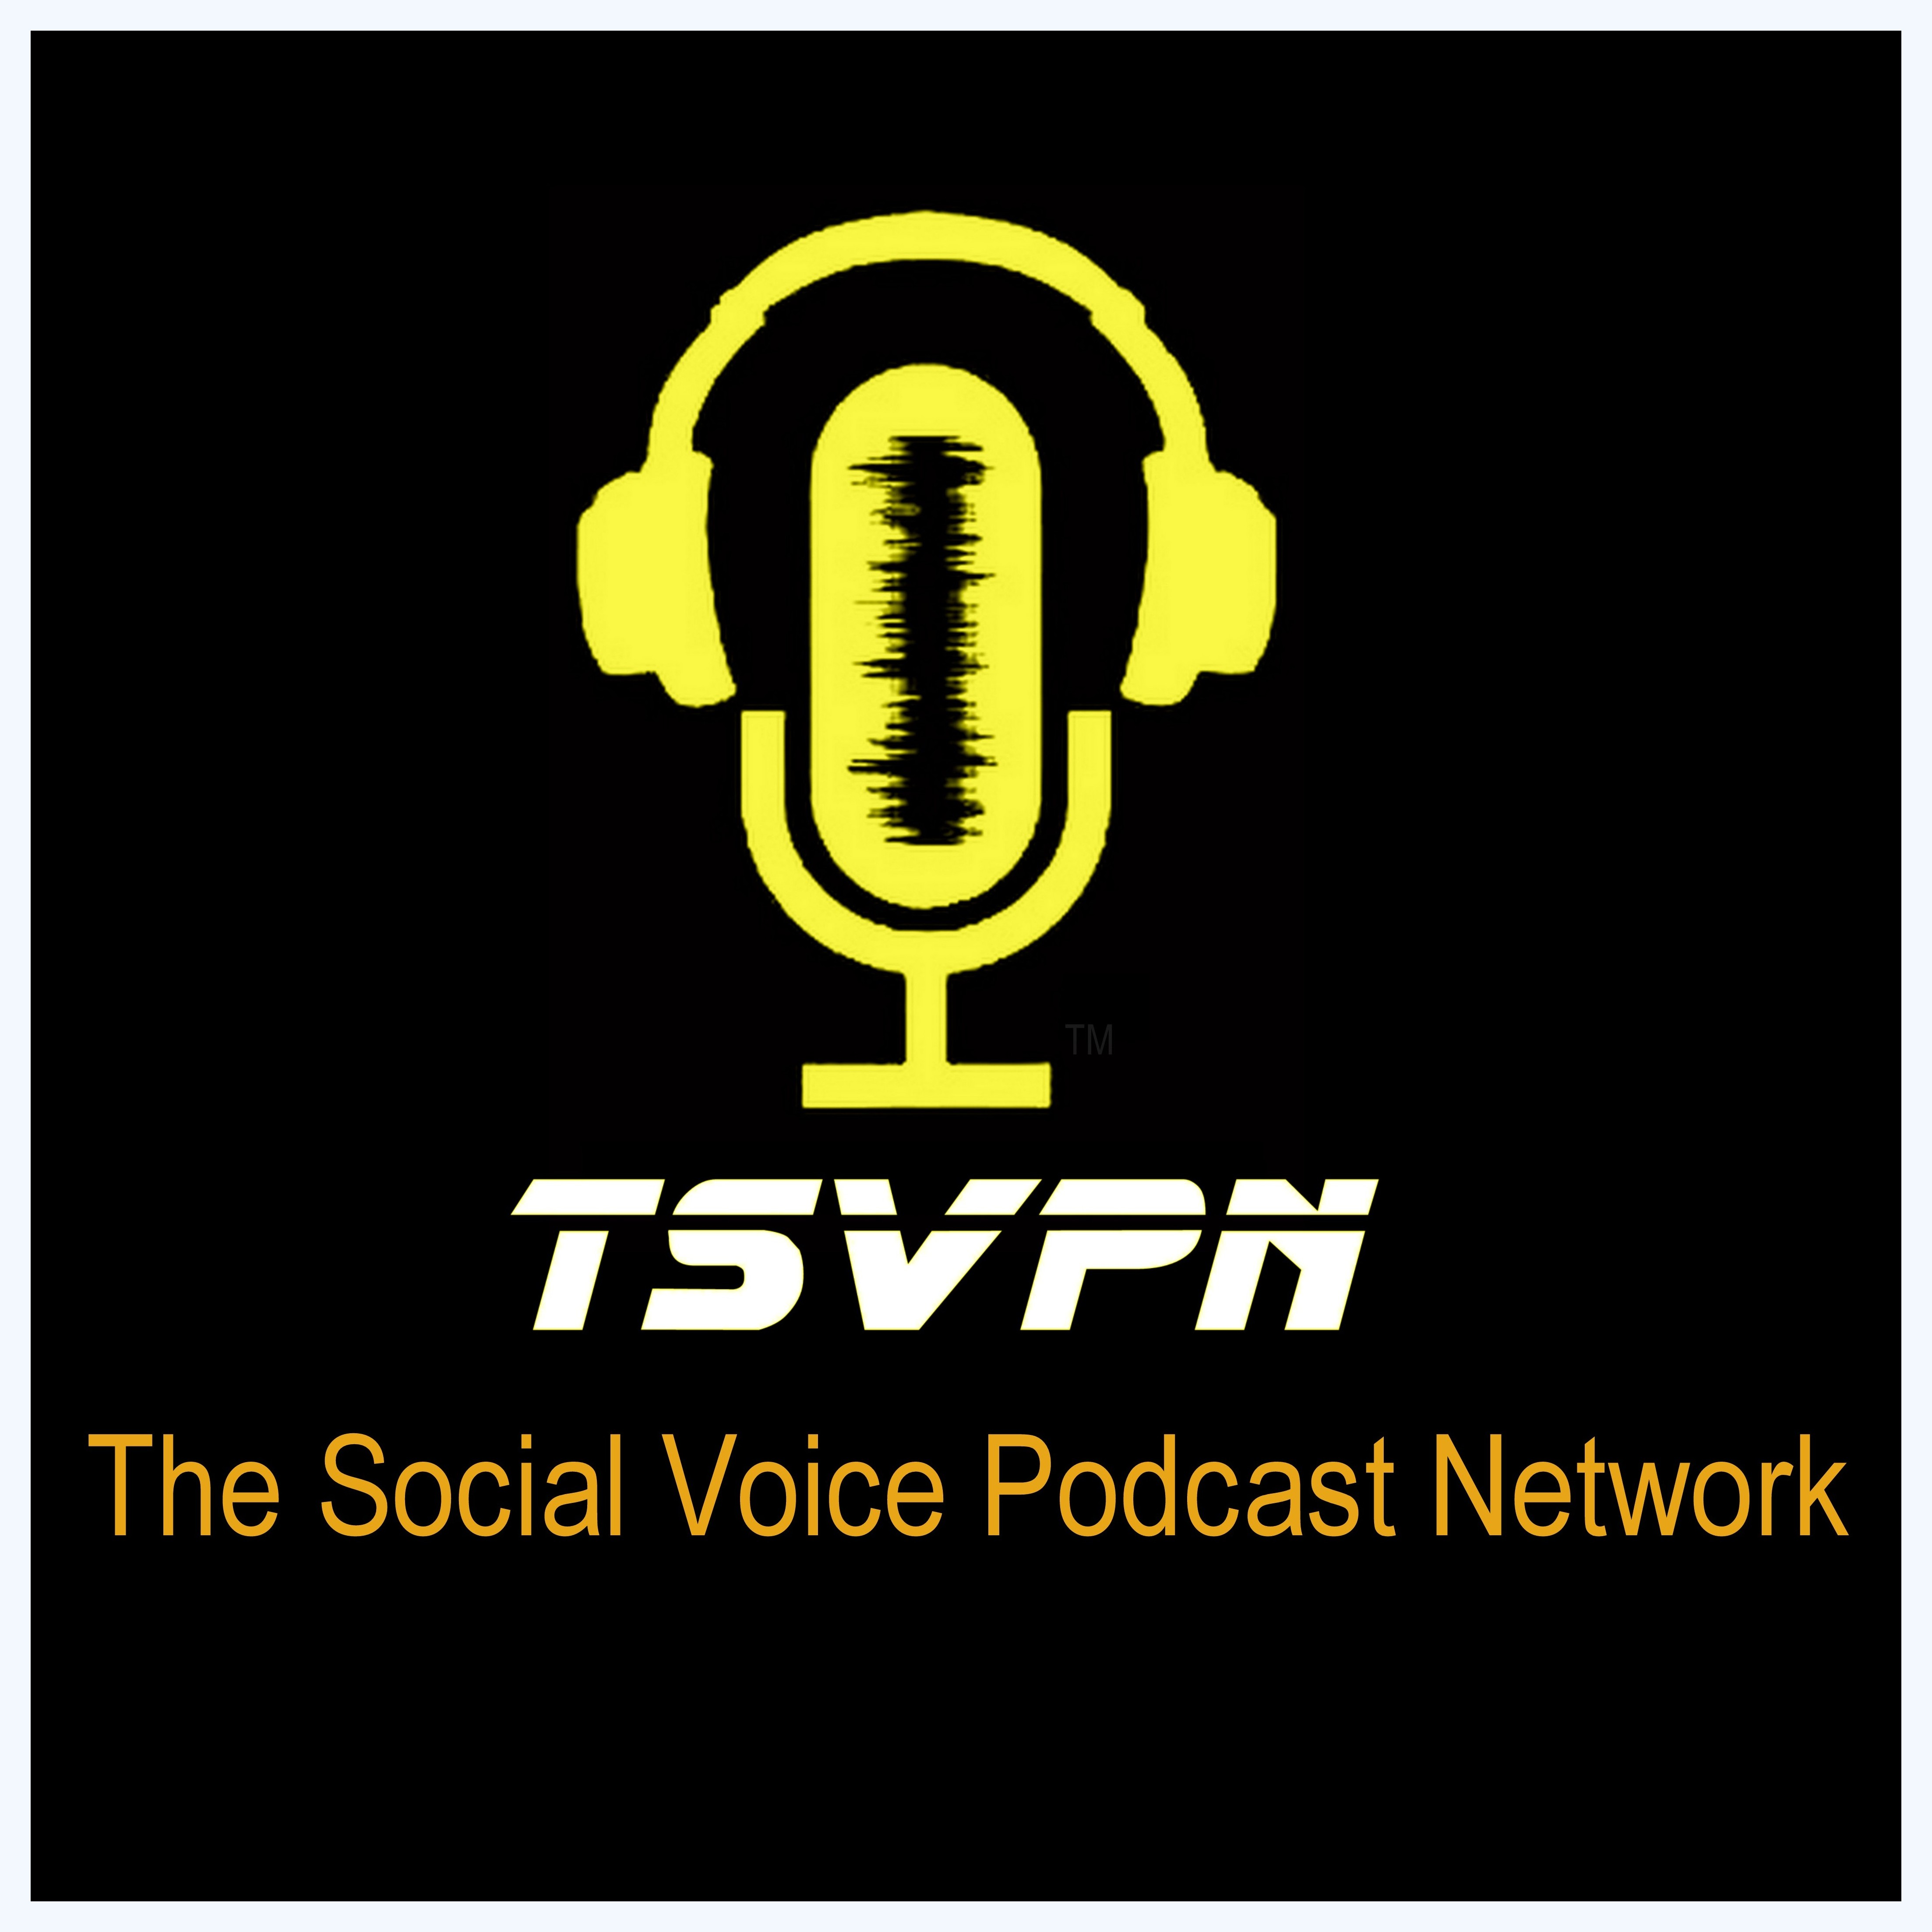 The Social Voice Podcast Network